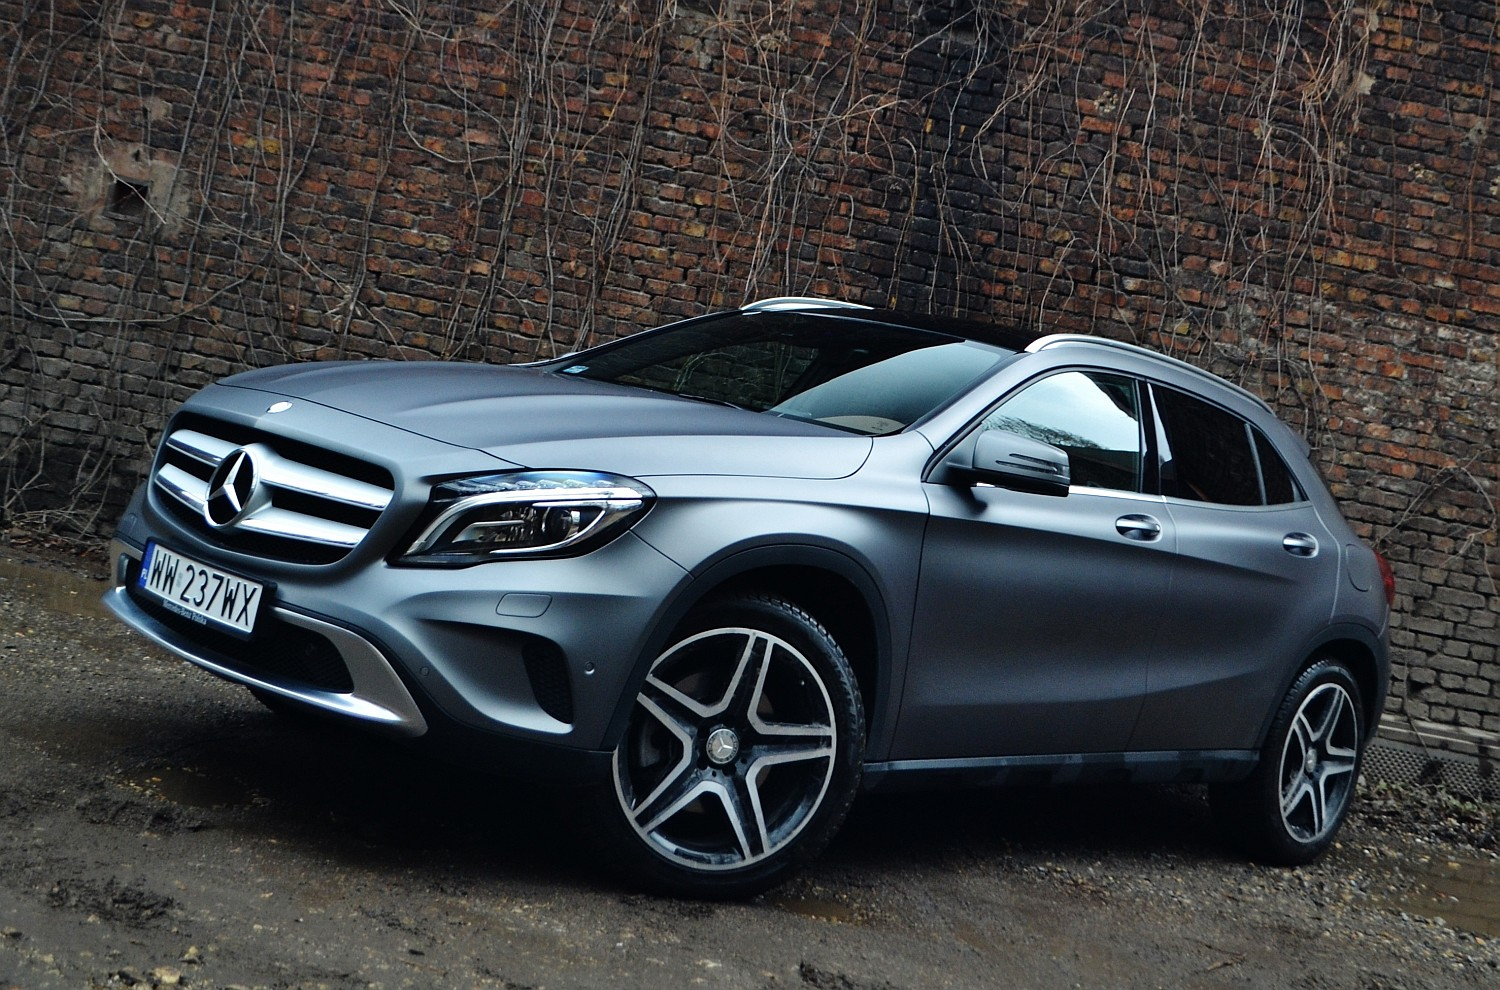 mercedes benz gla 250 4matic crossover w sportowym stylu namasce. Black Bedroom Furniture Sets. Home Design Ideas